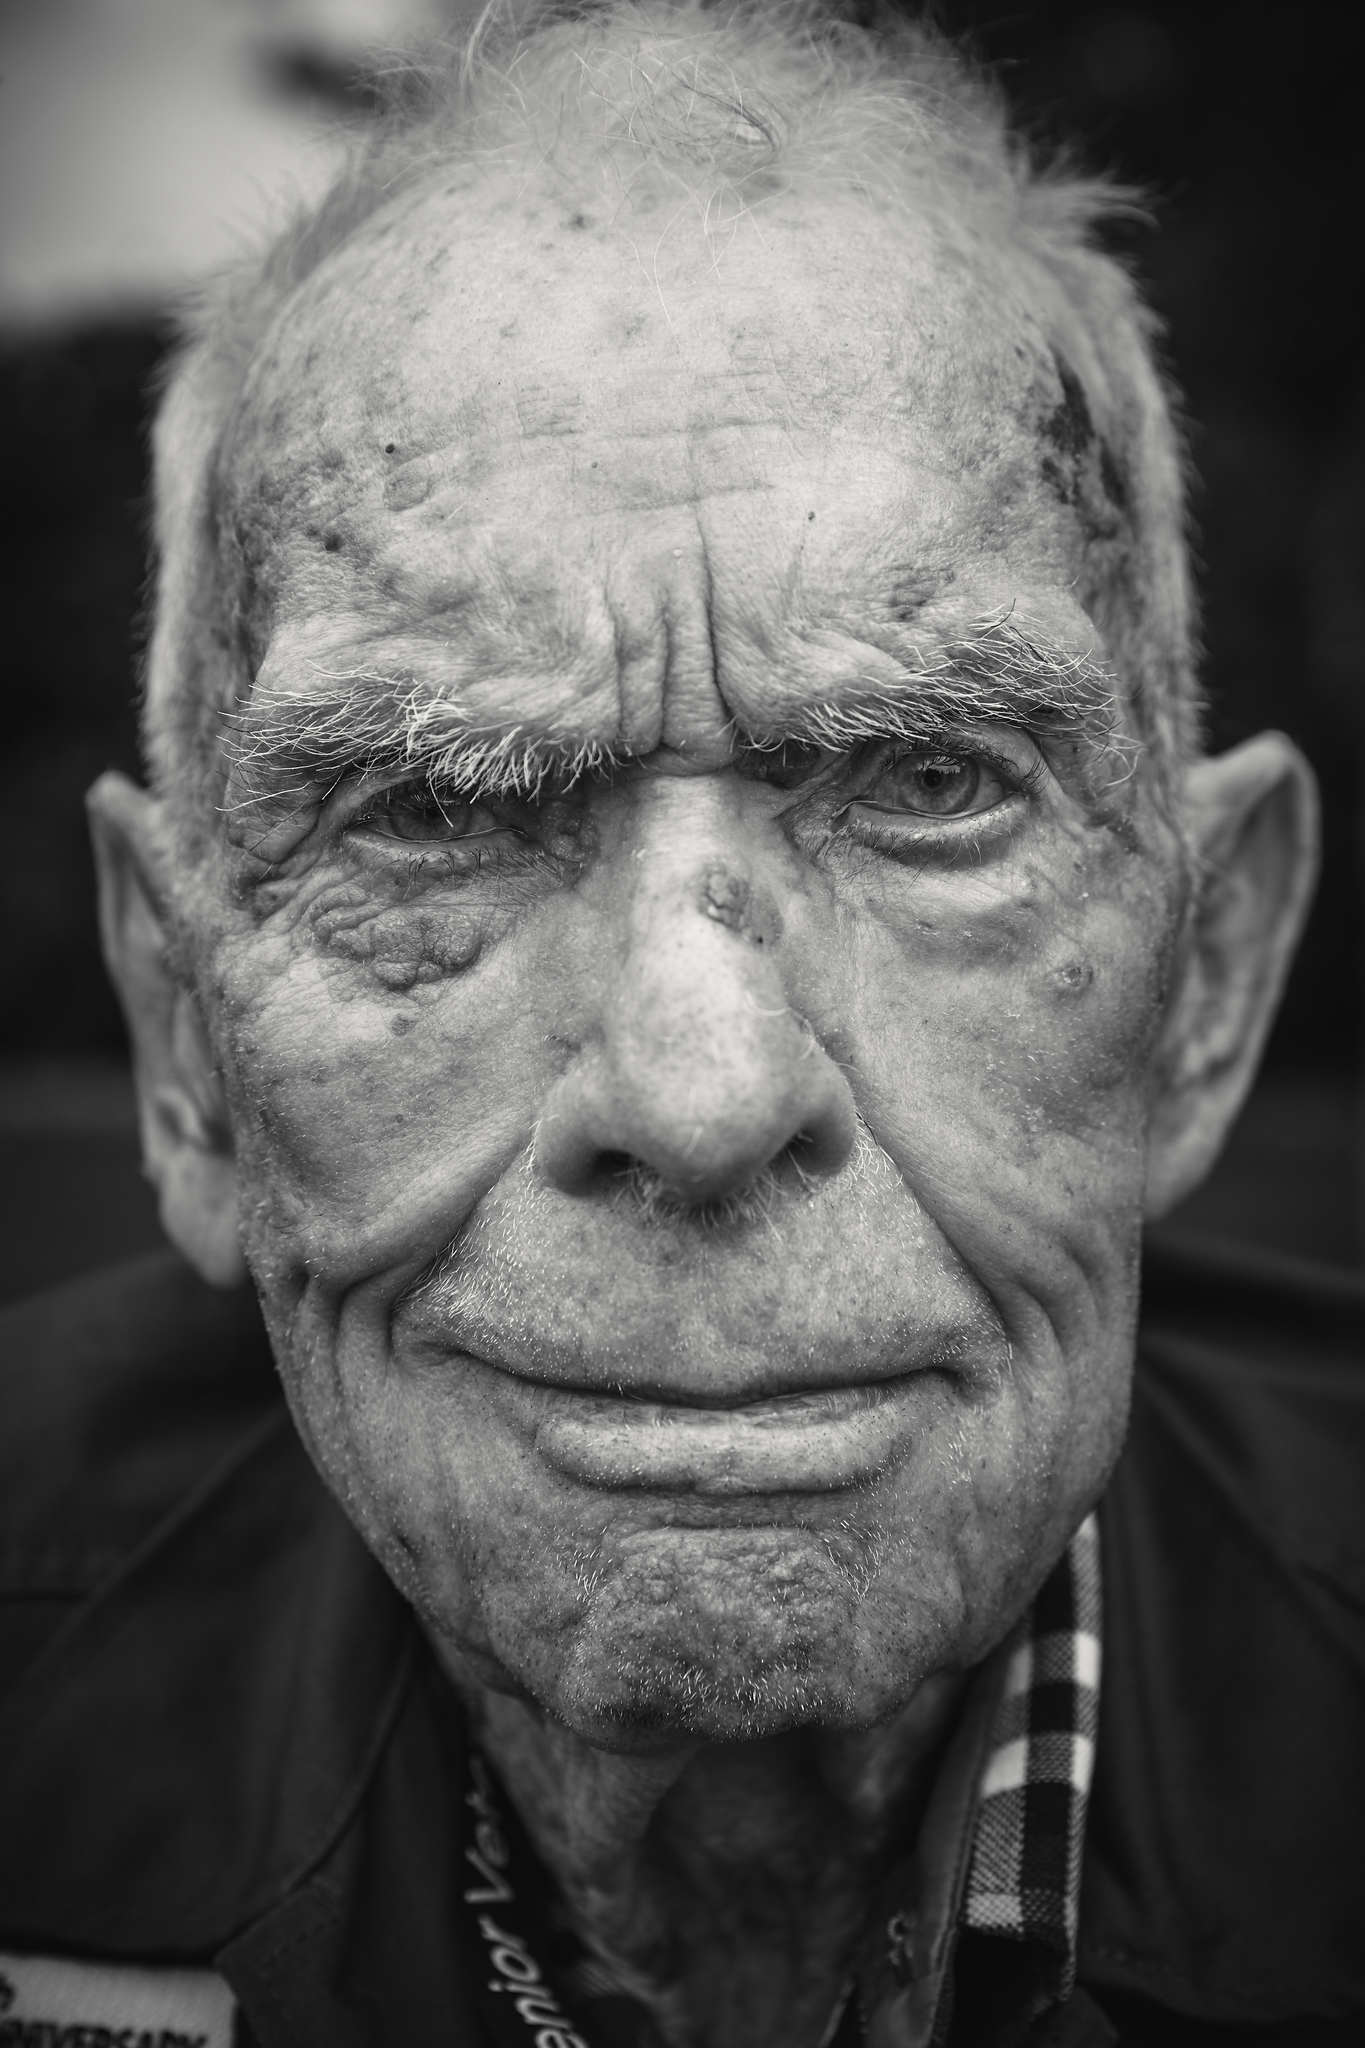 D-DAY VETERANS, FRANCE - JUNE 5: Loren Kissick (94 yrs old), from Washington State, U.S. Army, 83rd